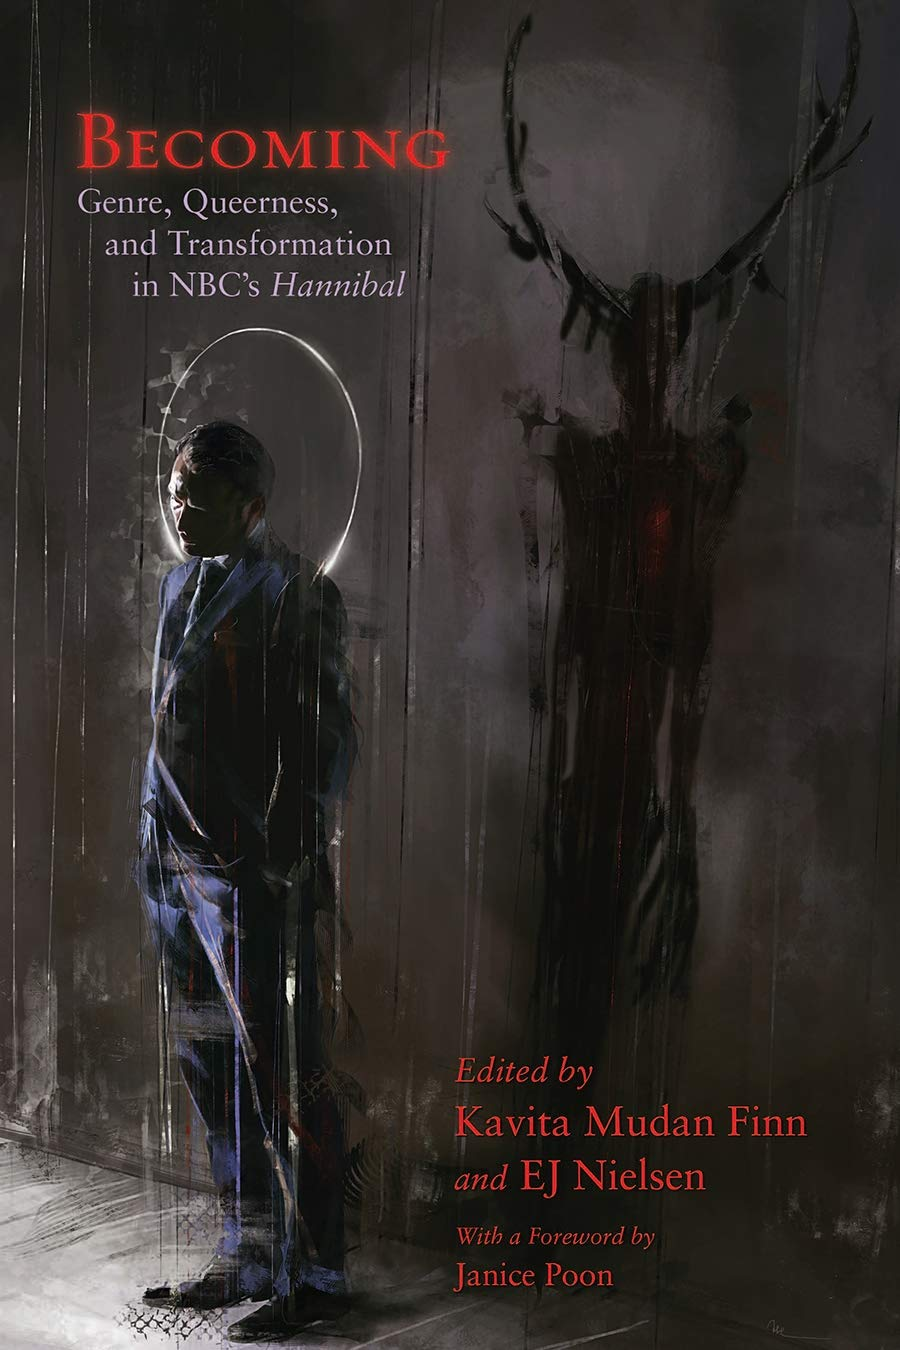 Becoming: Genre, Queerness, and Transformation in NBC's Hannibal (Paperback)